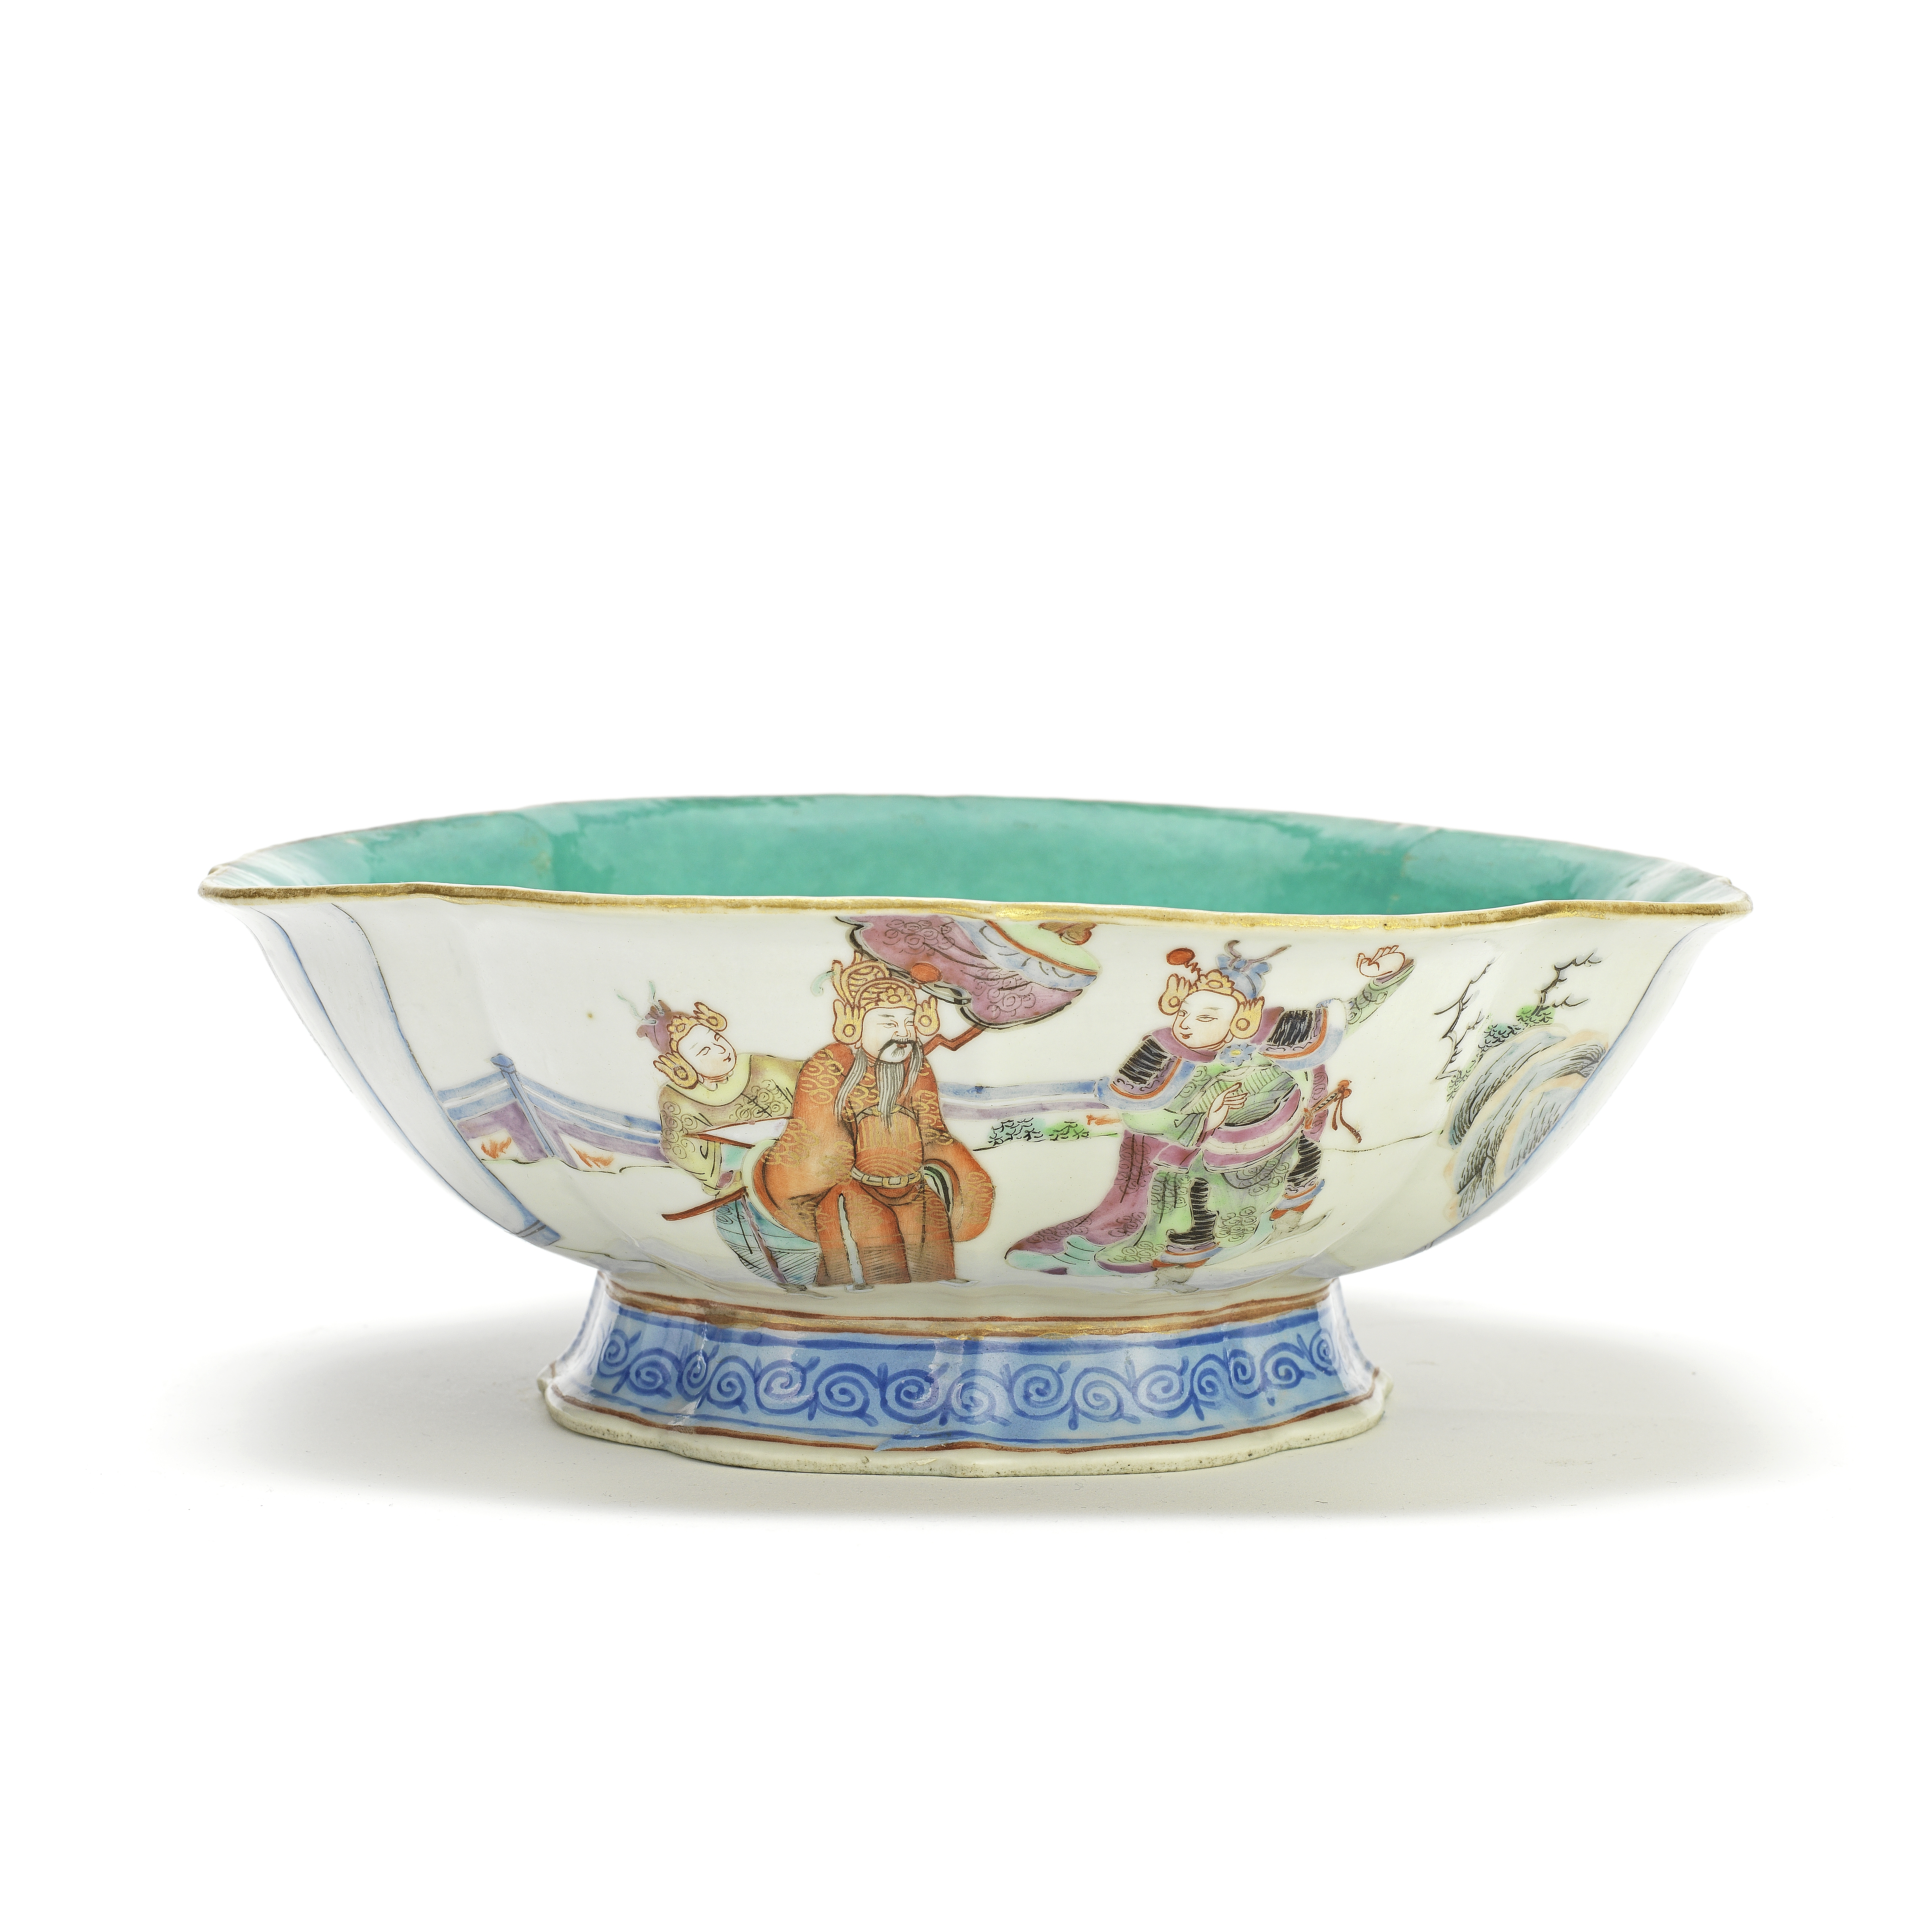 A FAMILLE ROSE STEM BOWL Tongzhi seal mark and of the period